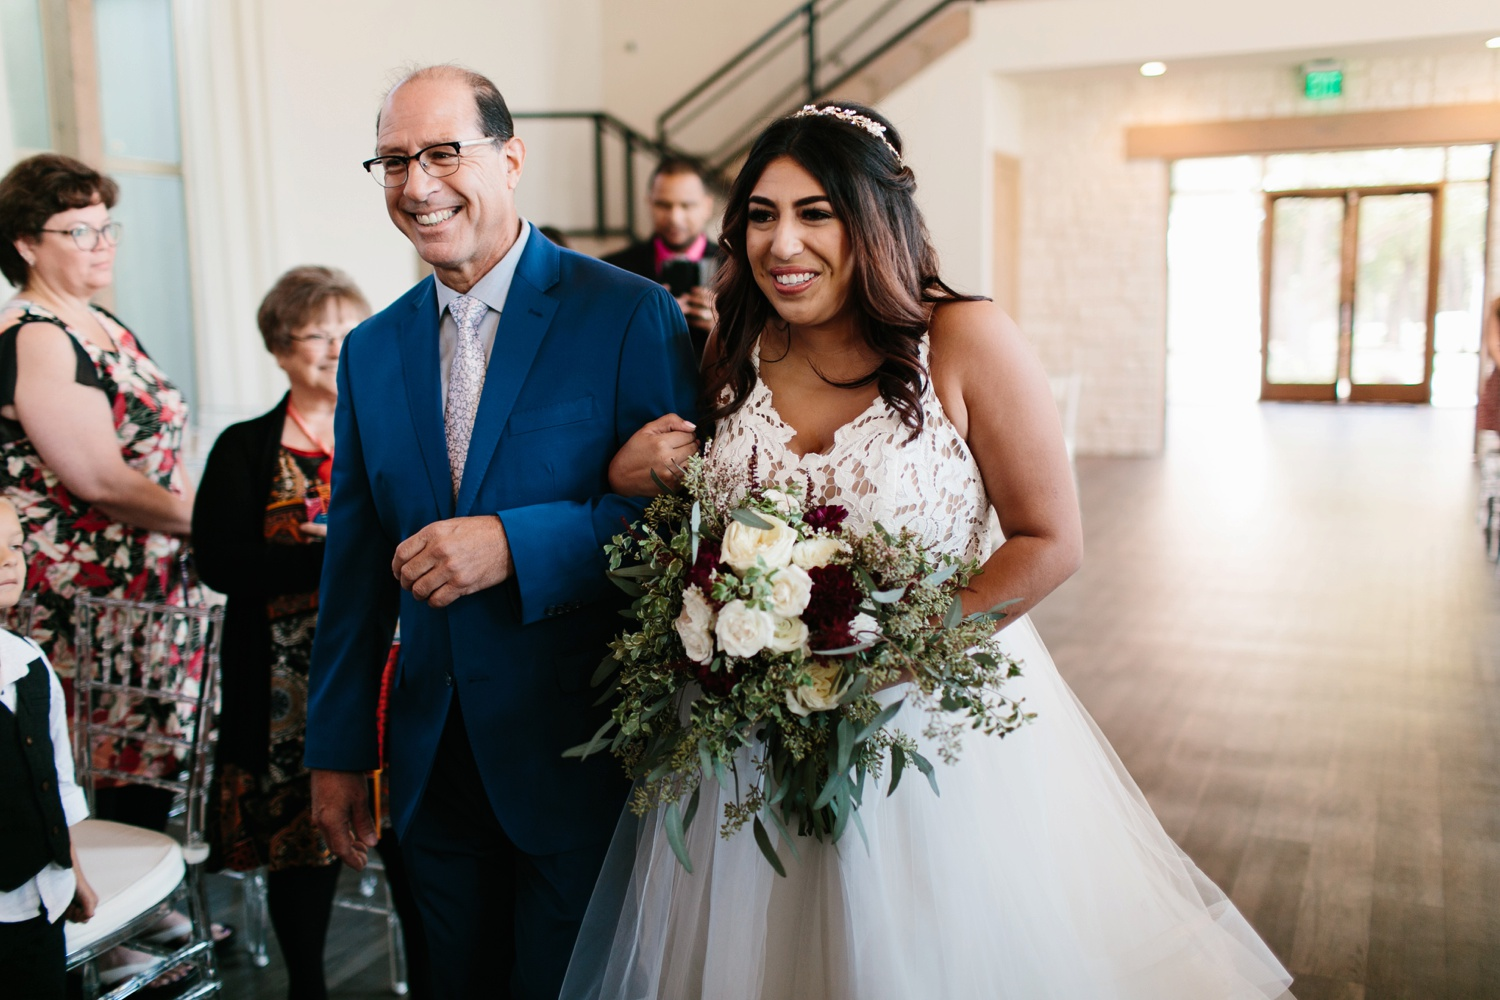 Grant + Lysette | a vibrant, deep burgundy and navy, and mixed metals wedding at Hidden Pines Chapel by North Texas Wedding Photographer Rachel Meagan Photography 062